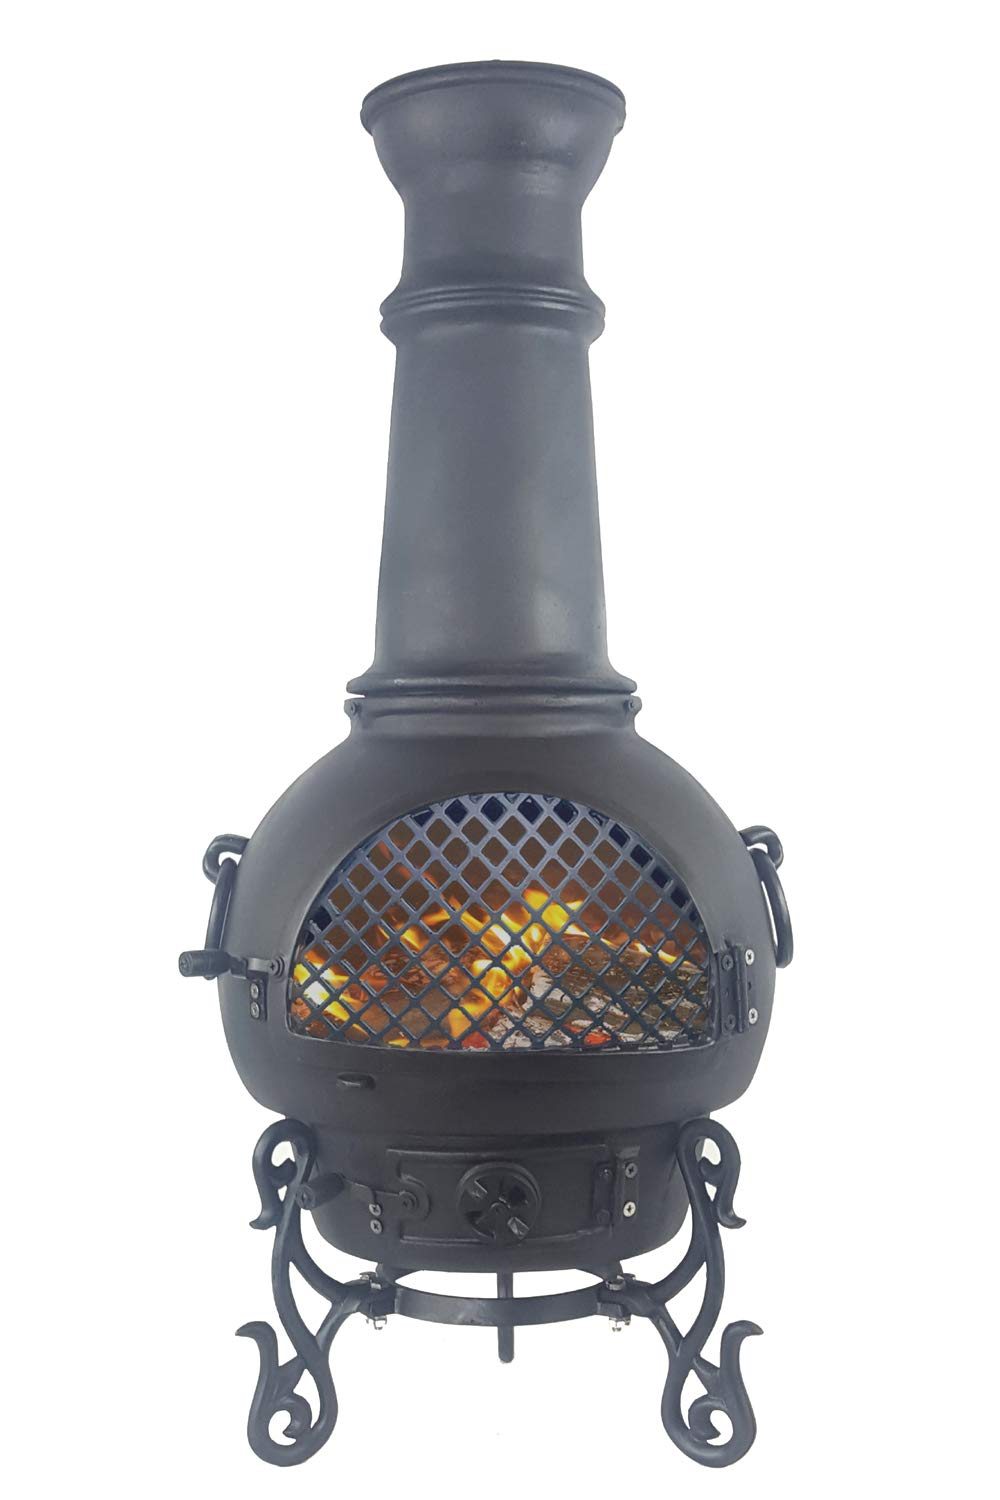 The Blue Rooster Gatsby Wood Burning Chiminea by The Blue Rooster